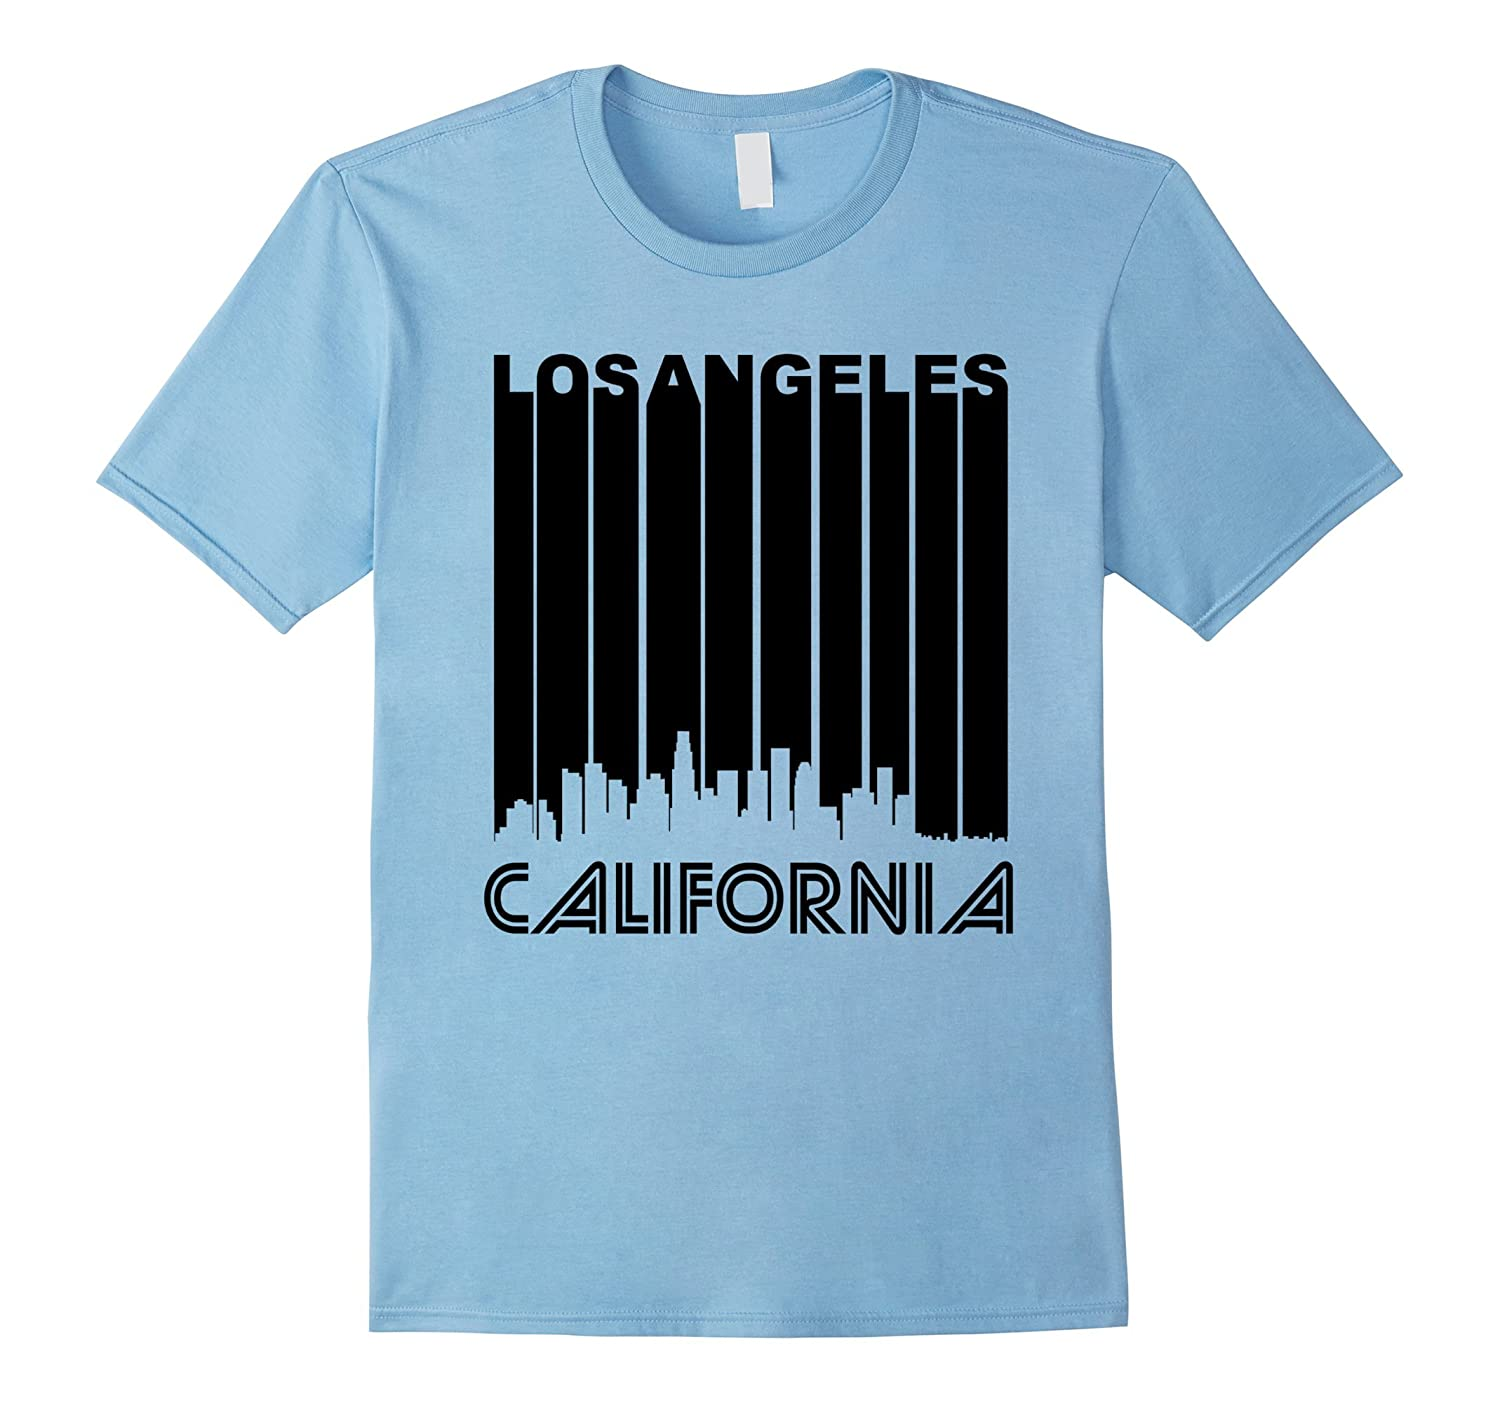 Retro 1970s Los Angeles California Downtown Skyline T